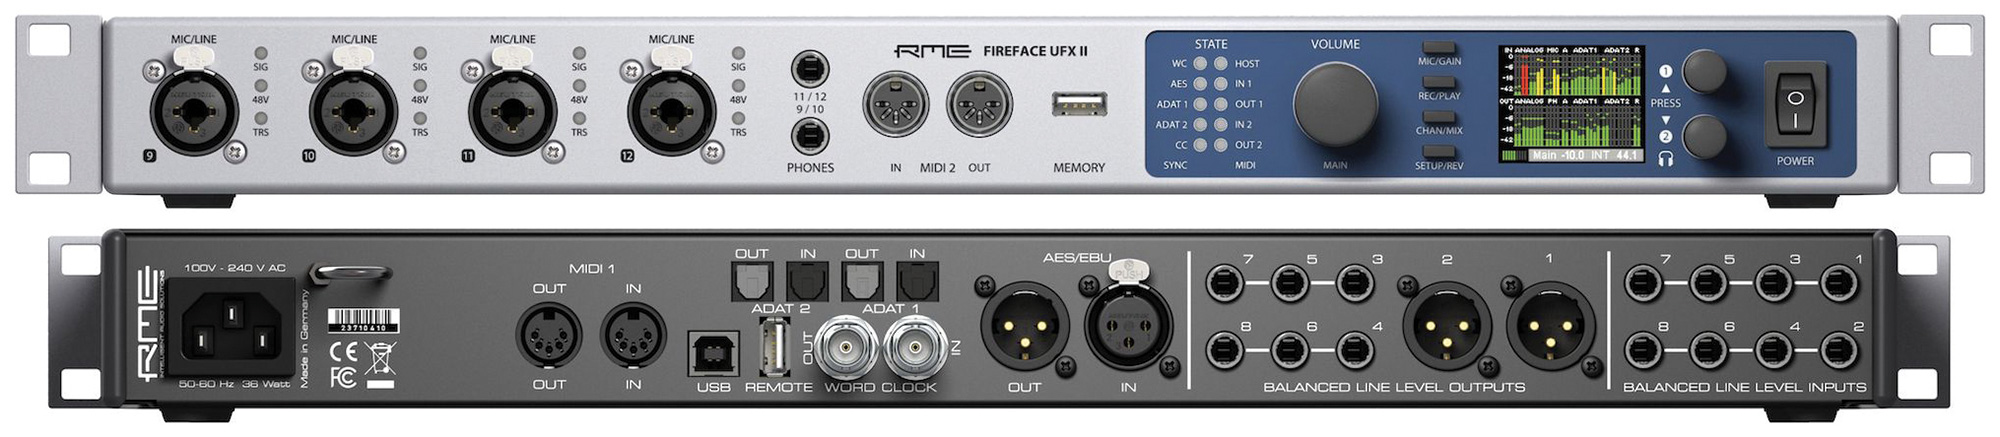 RME FIREFACE UFX II & UFX+ AUDIO INTERFACES - AudioTechnology